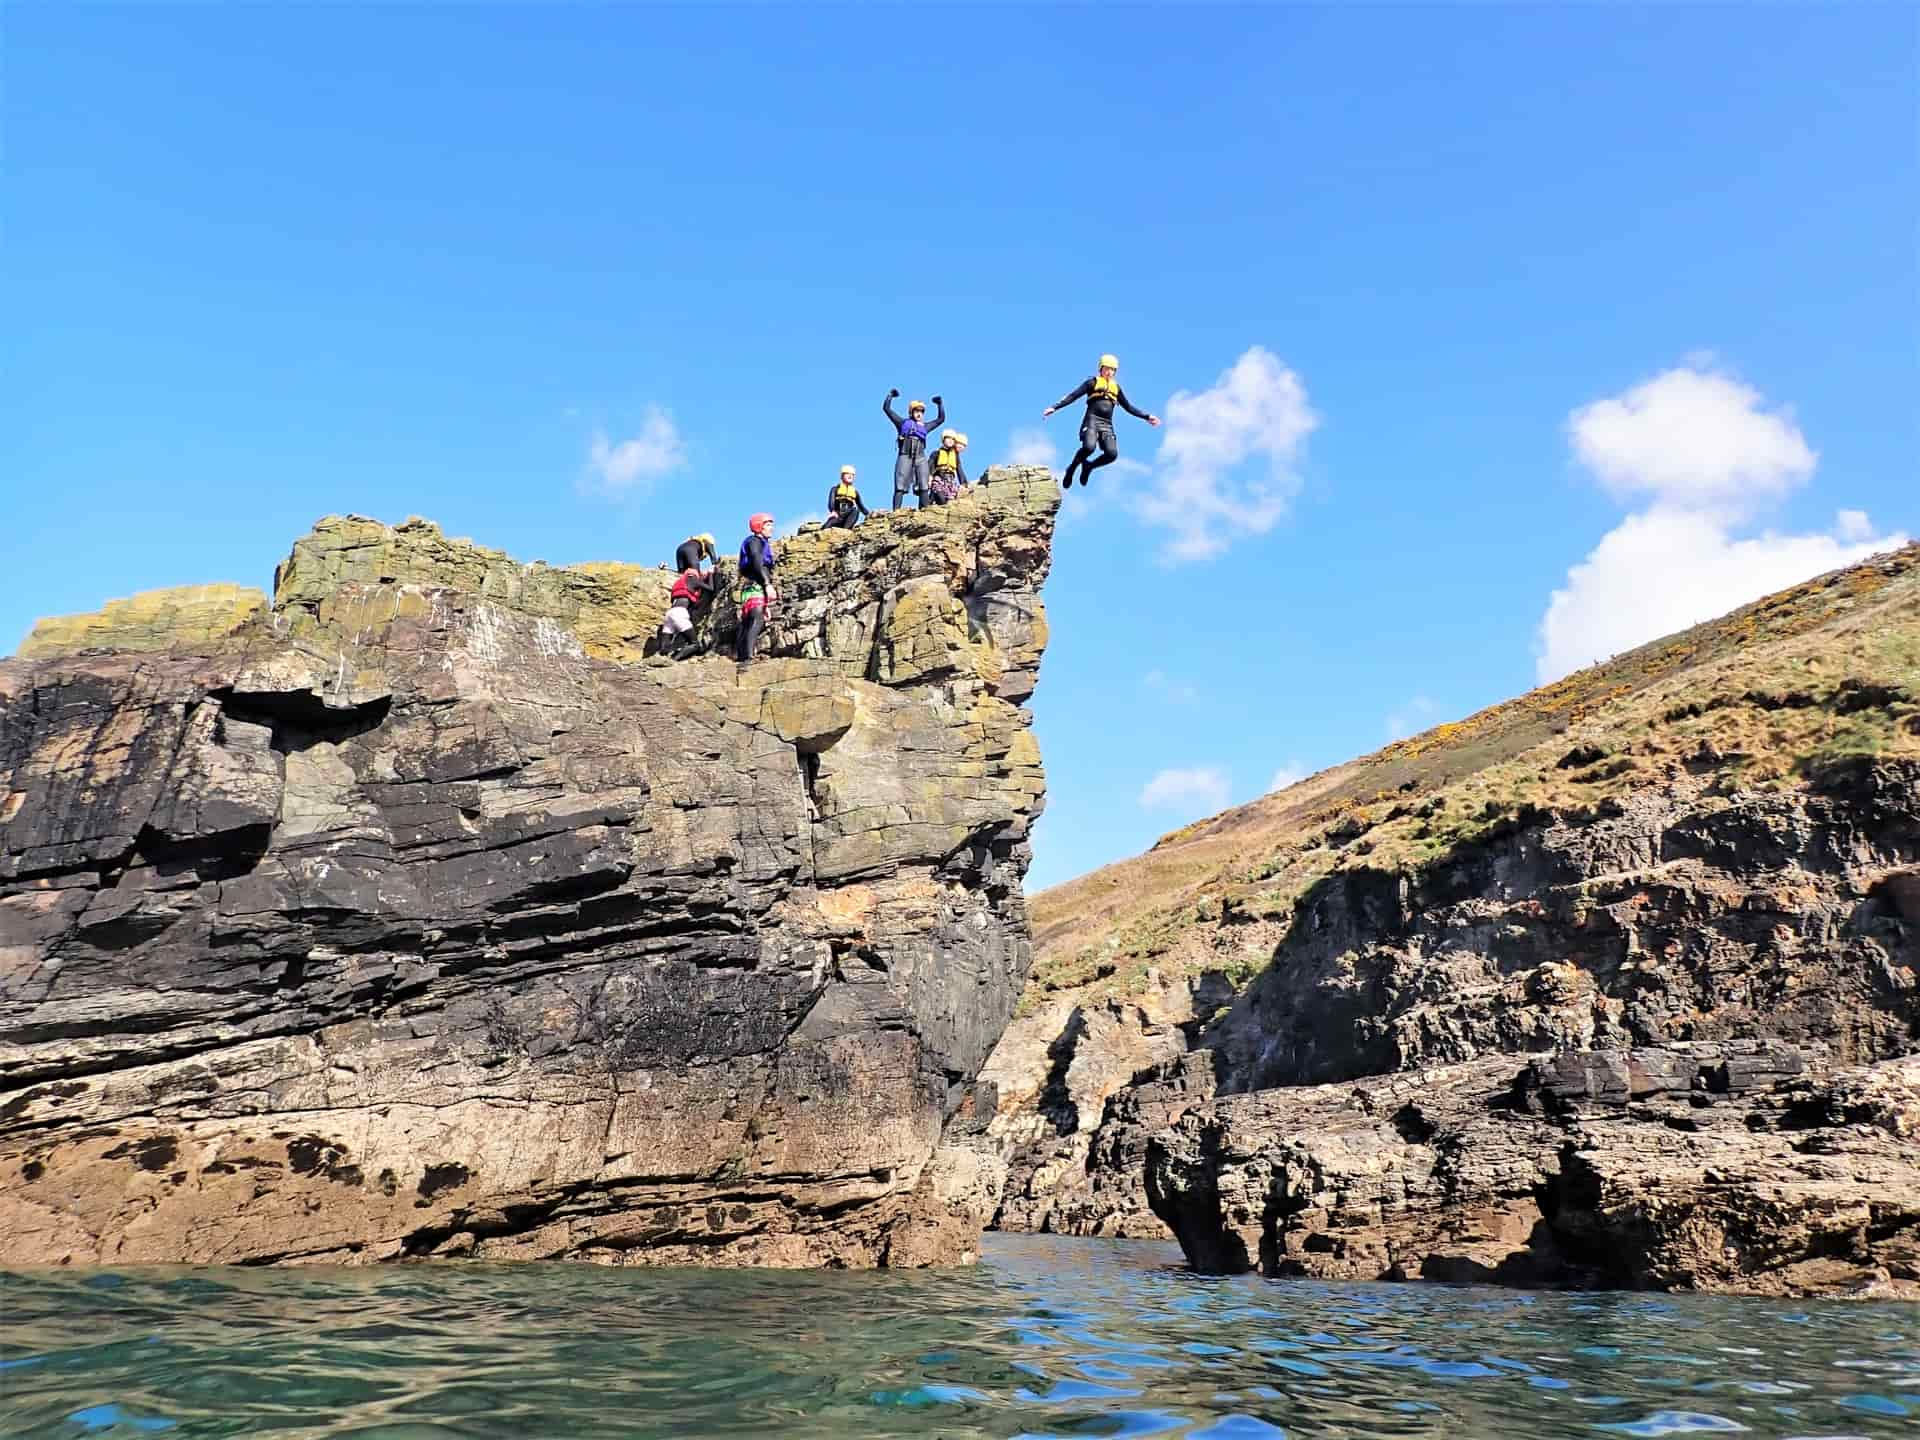 Cliff jumper at Praa sands doing one of the best jumps coasteering with Kernow Coasteering Cornwall